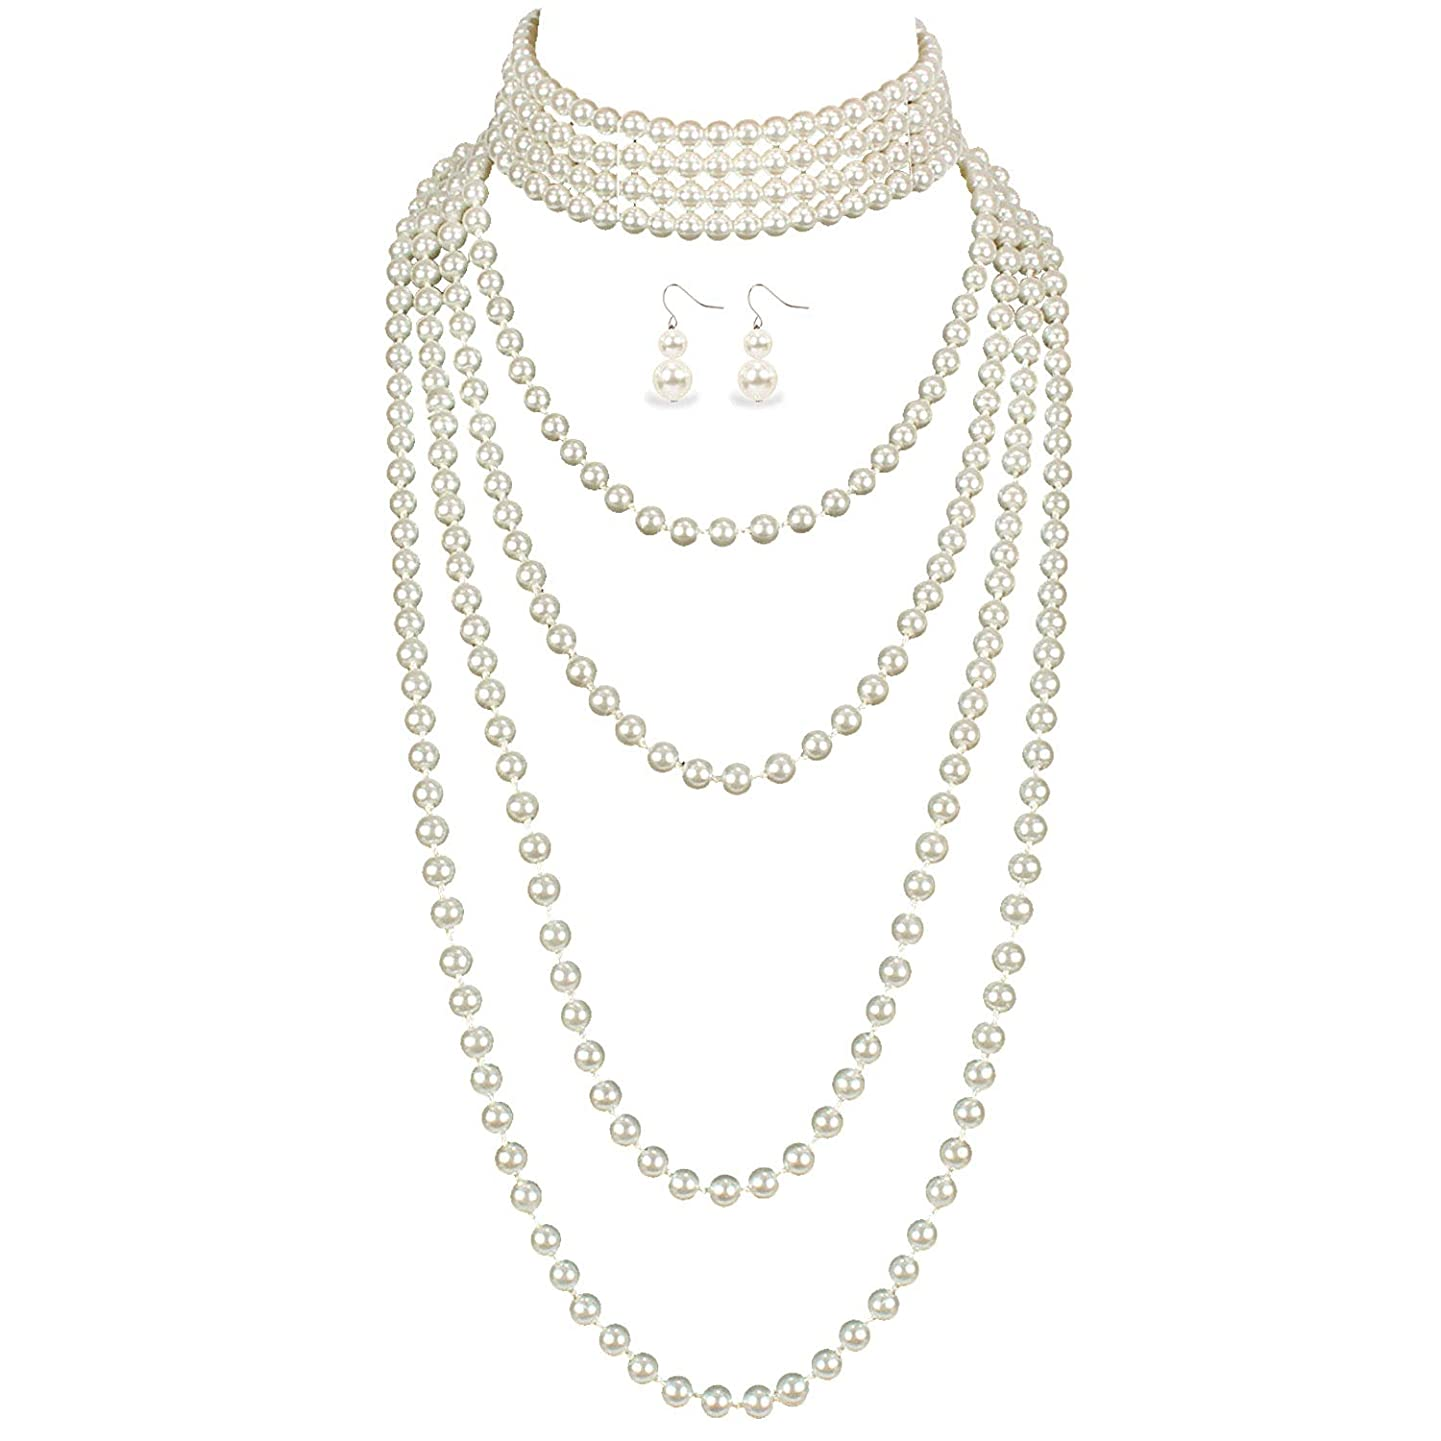 LuckyHouse Multi Layer Faux Pearl Strands White Necklace for Women Costume Jewelry